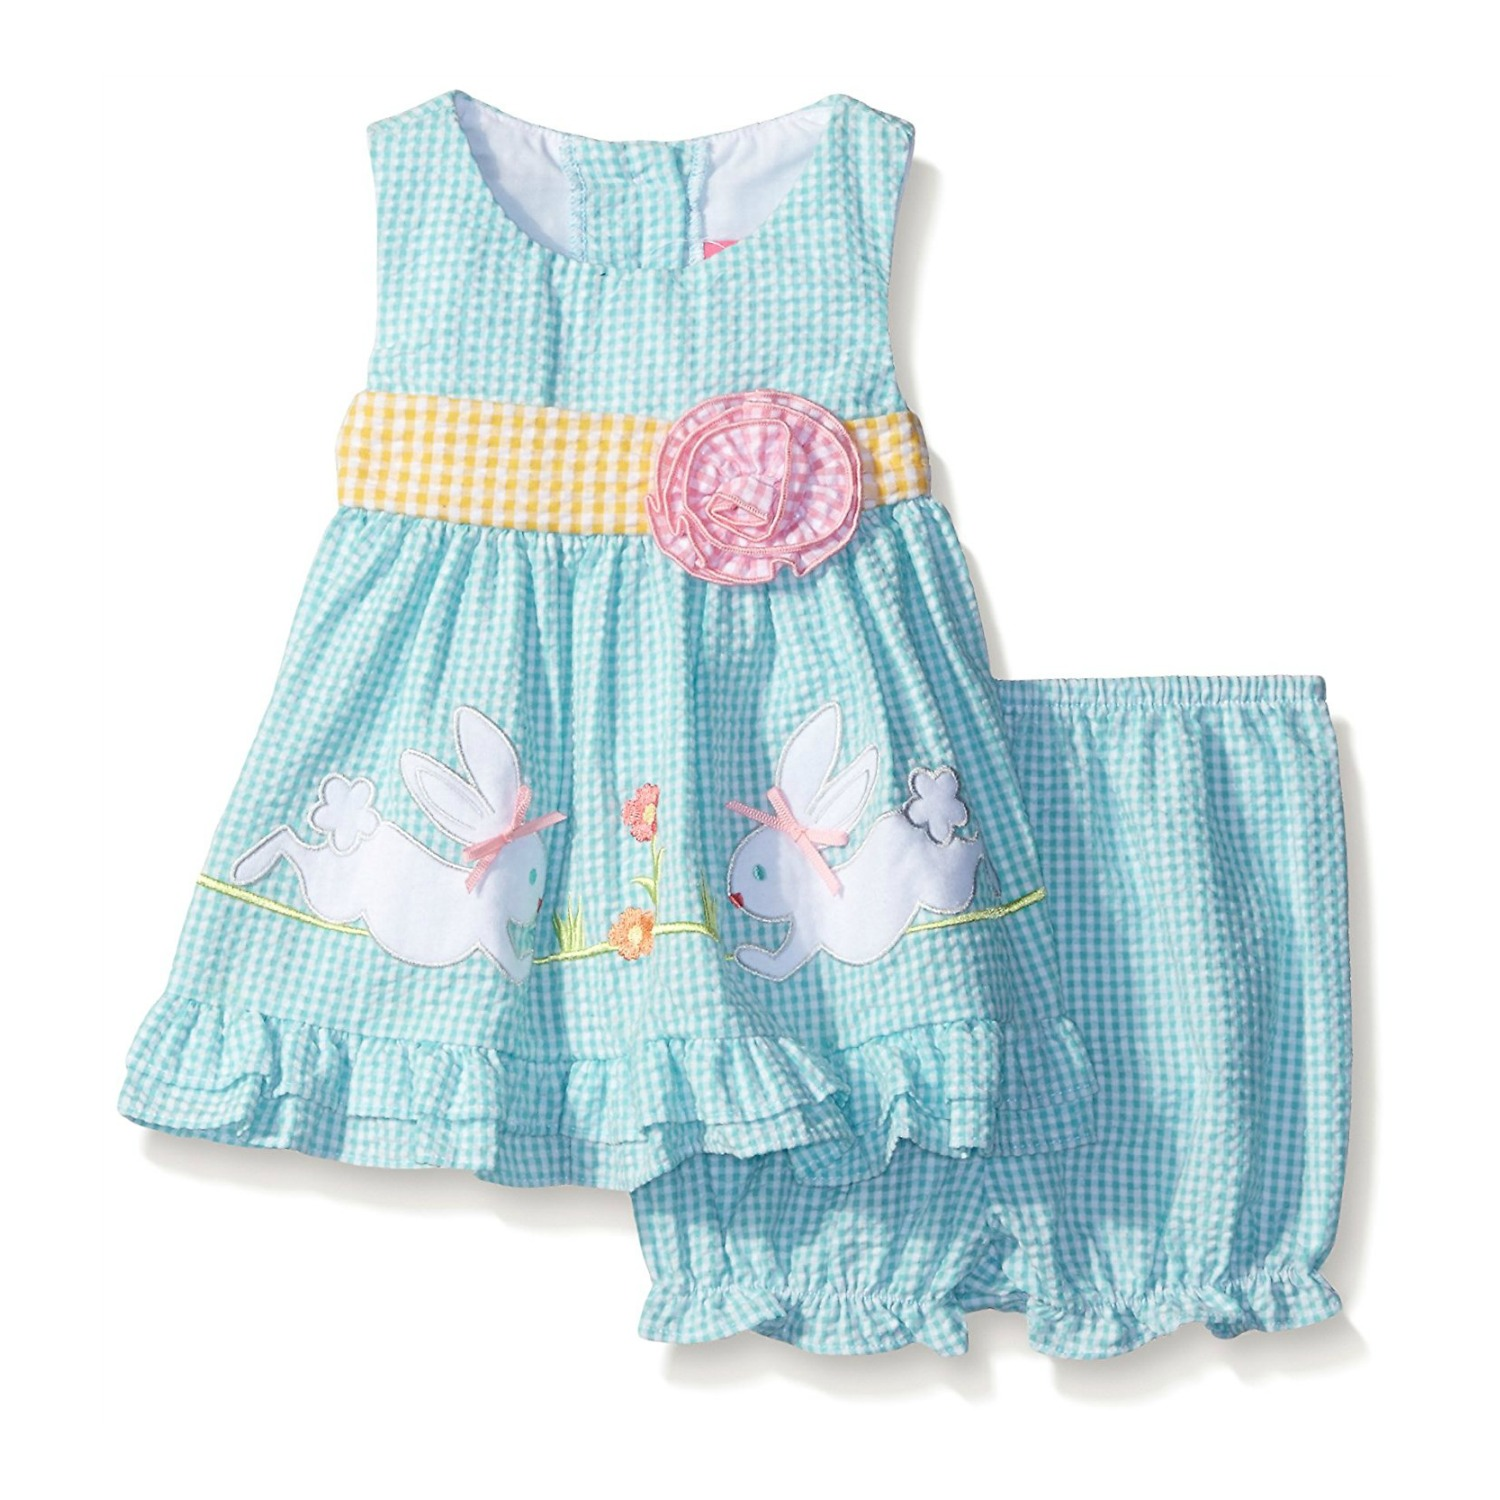 Shop for Easter clothes for your little boy or girl at Carter's, where you'll find cute Easter outfits and dresses for babies, toddlers, and kids. Sweet Heart Rose Striped Smocked Dress, Little it24-ieop.gq ACT. $ Now $ coupon excluded. Last Act: Extra savings do not apply. coupon excluded.